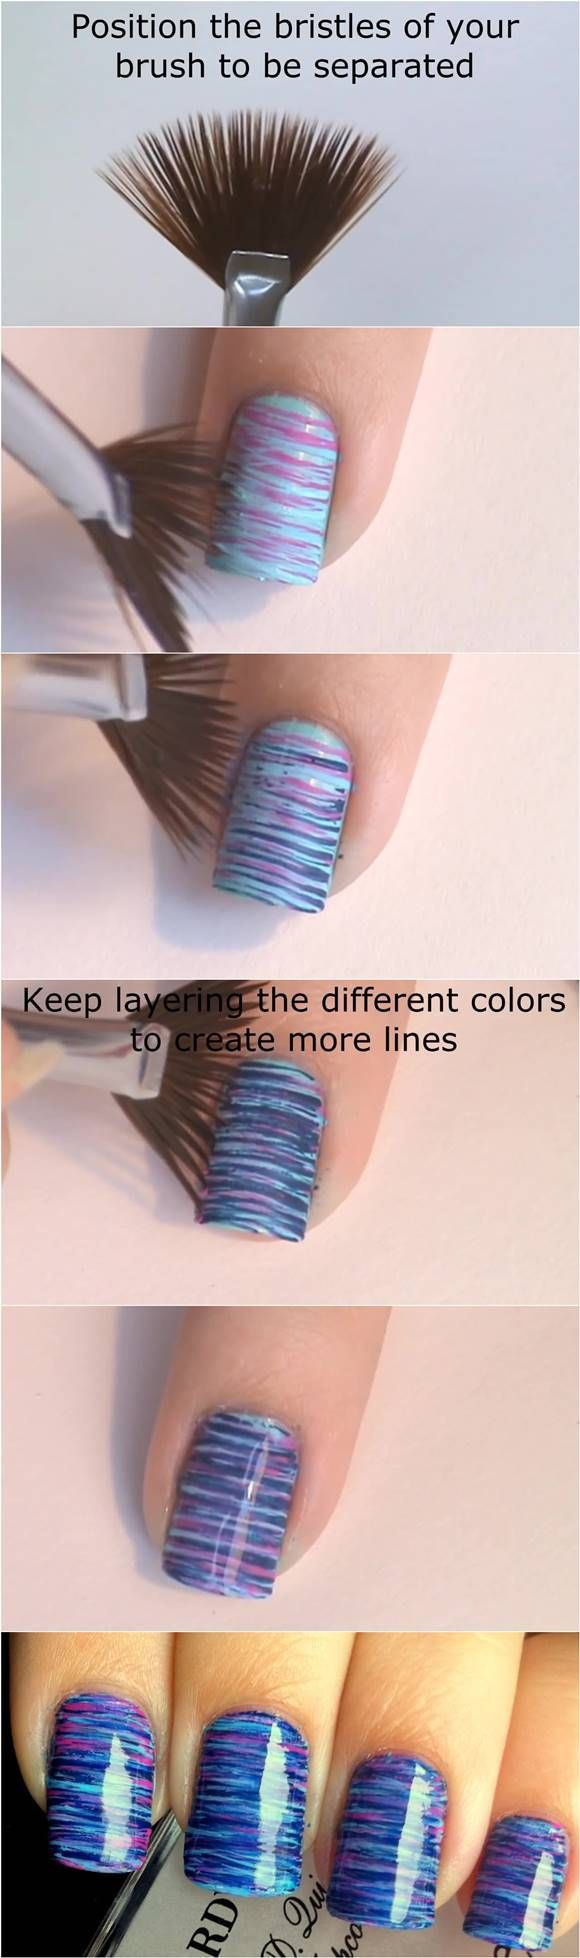 How to DIY Blue and Pink Fan Brush Striped Nail Art #fashion #beauty #nail_art                                                                                                                                                     Más